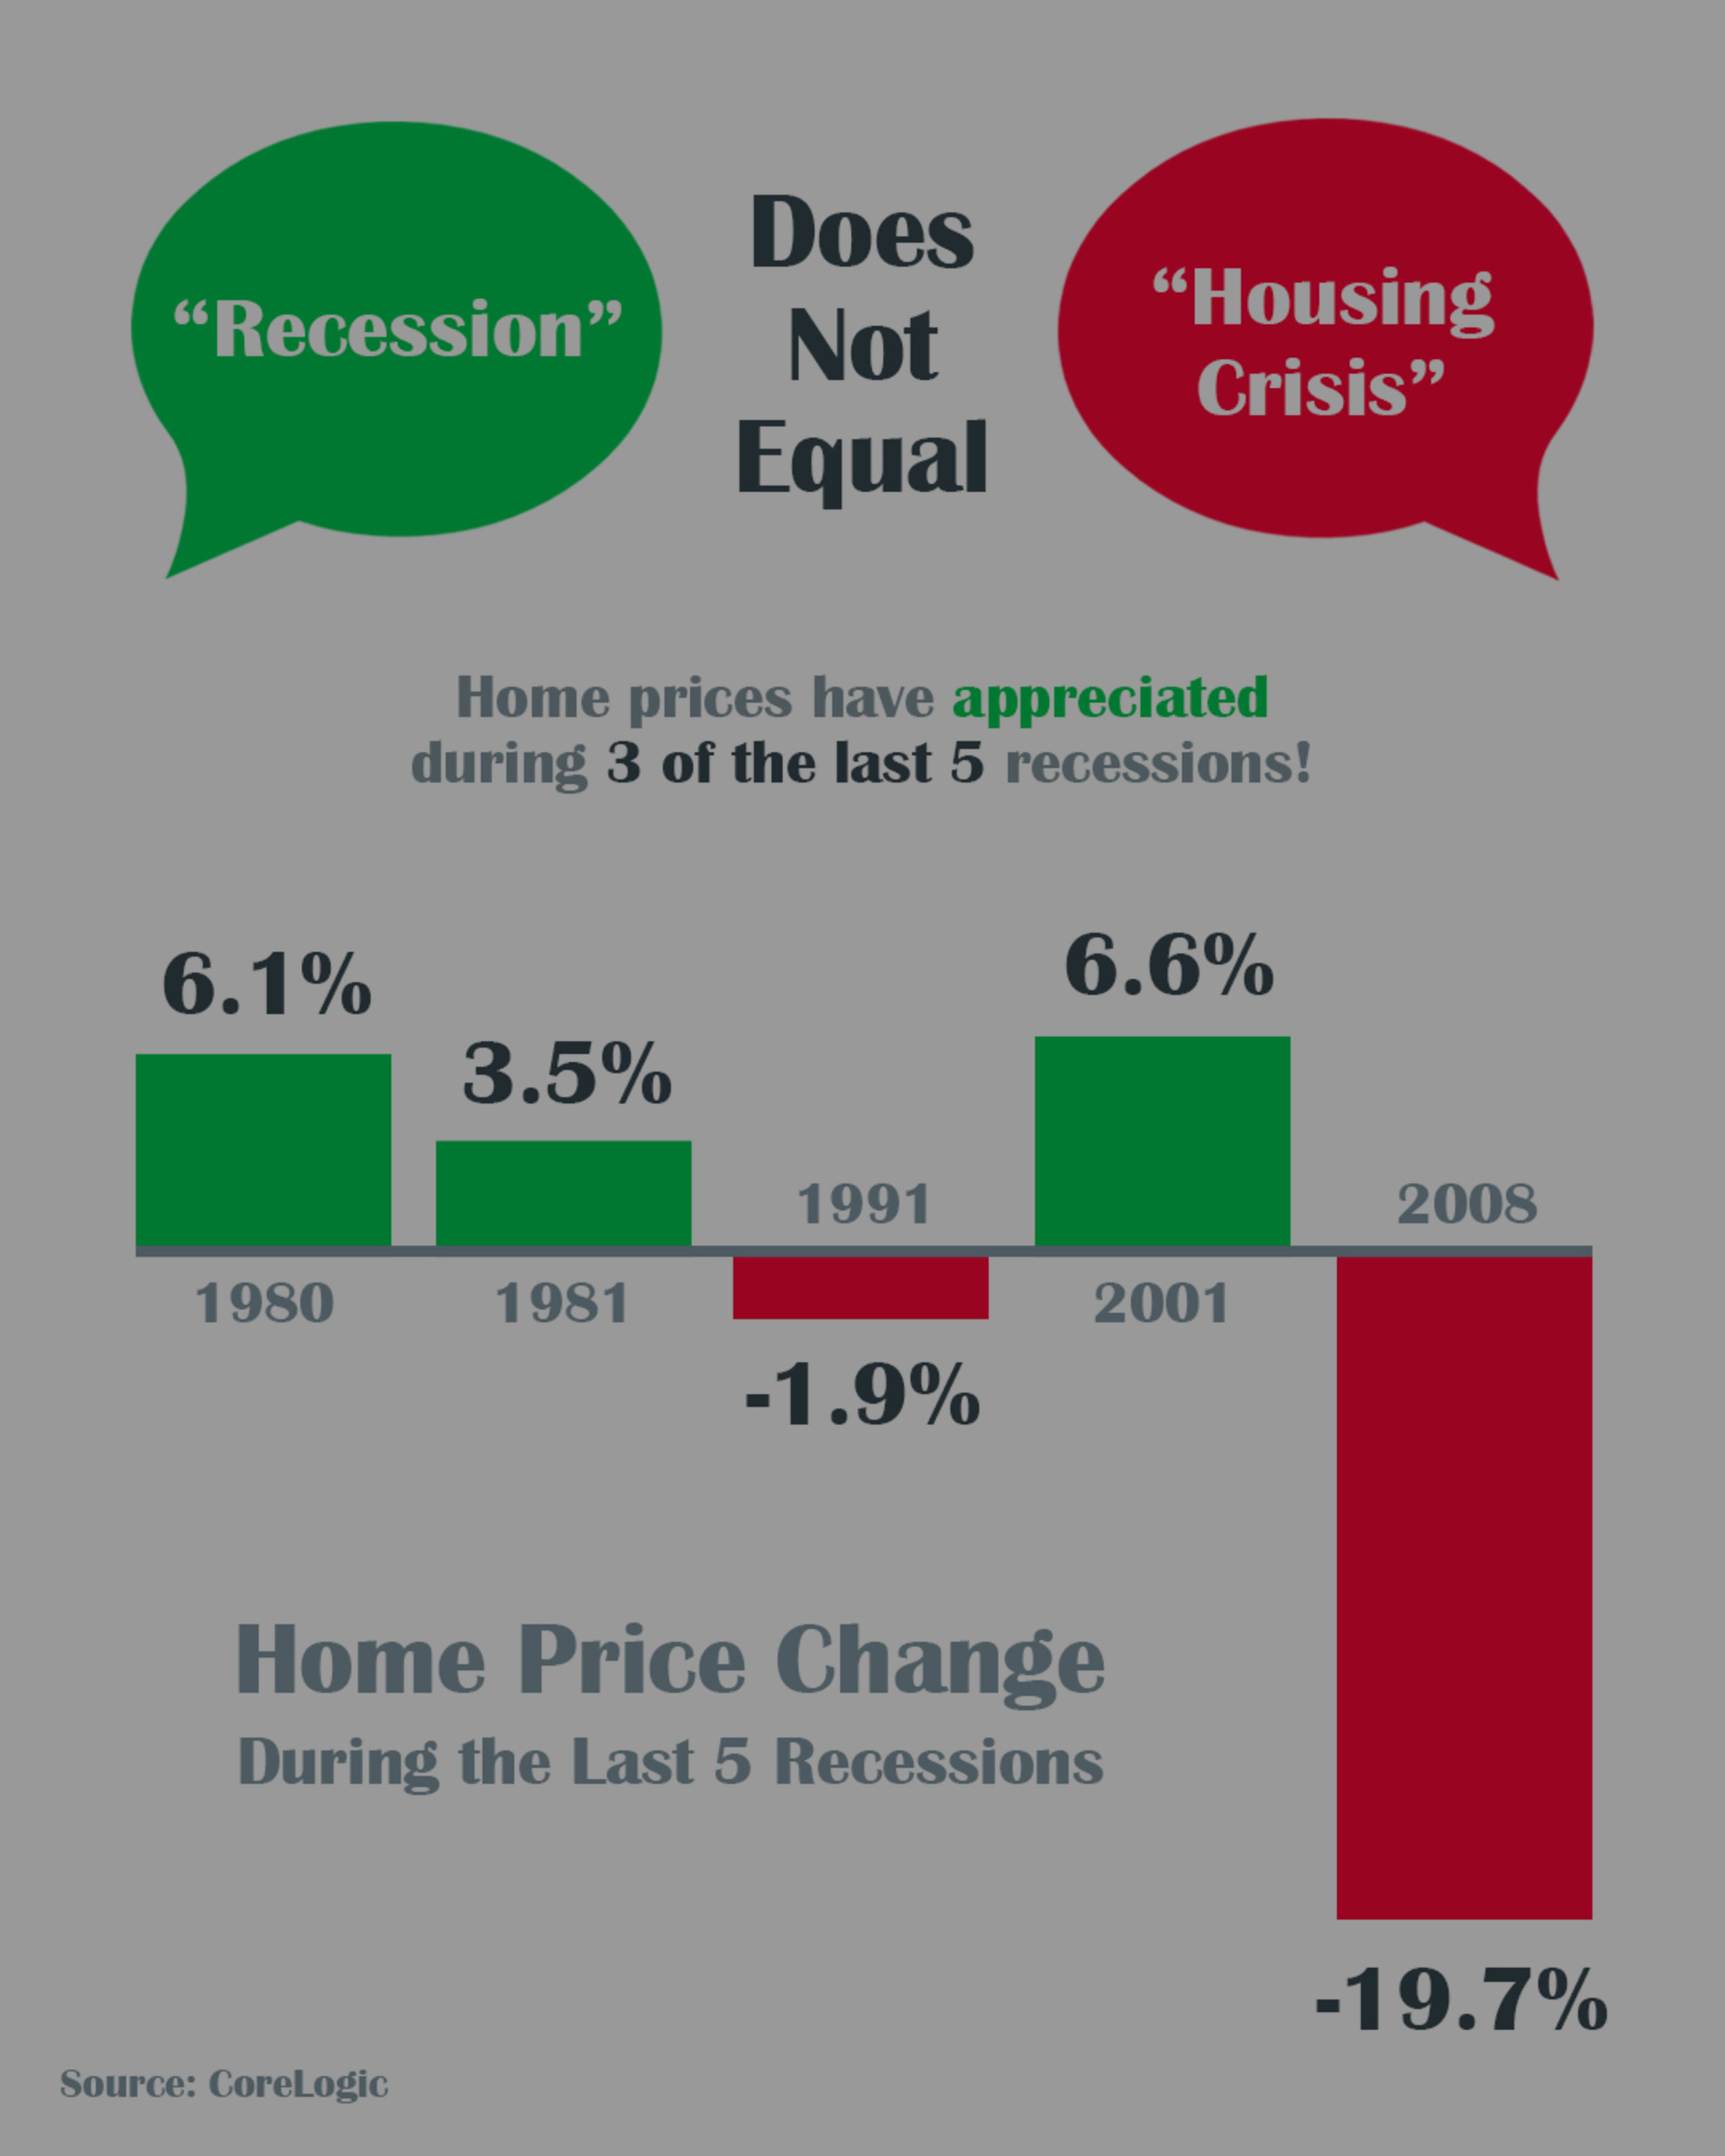 SELL MY HOUSE IN MD | A Recession Does Not Equal a Housing Crisis [INFOGRAPHIC]